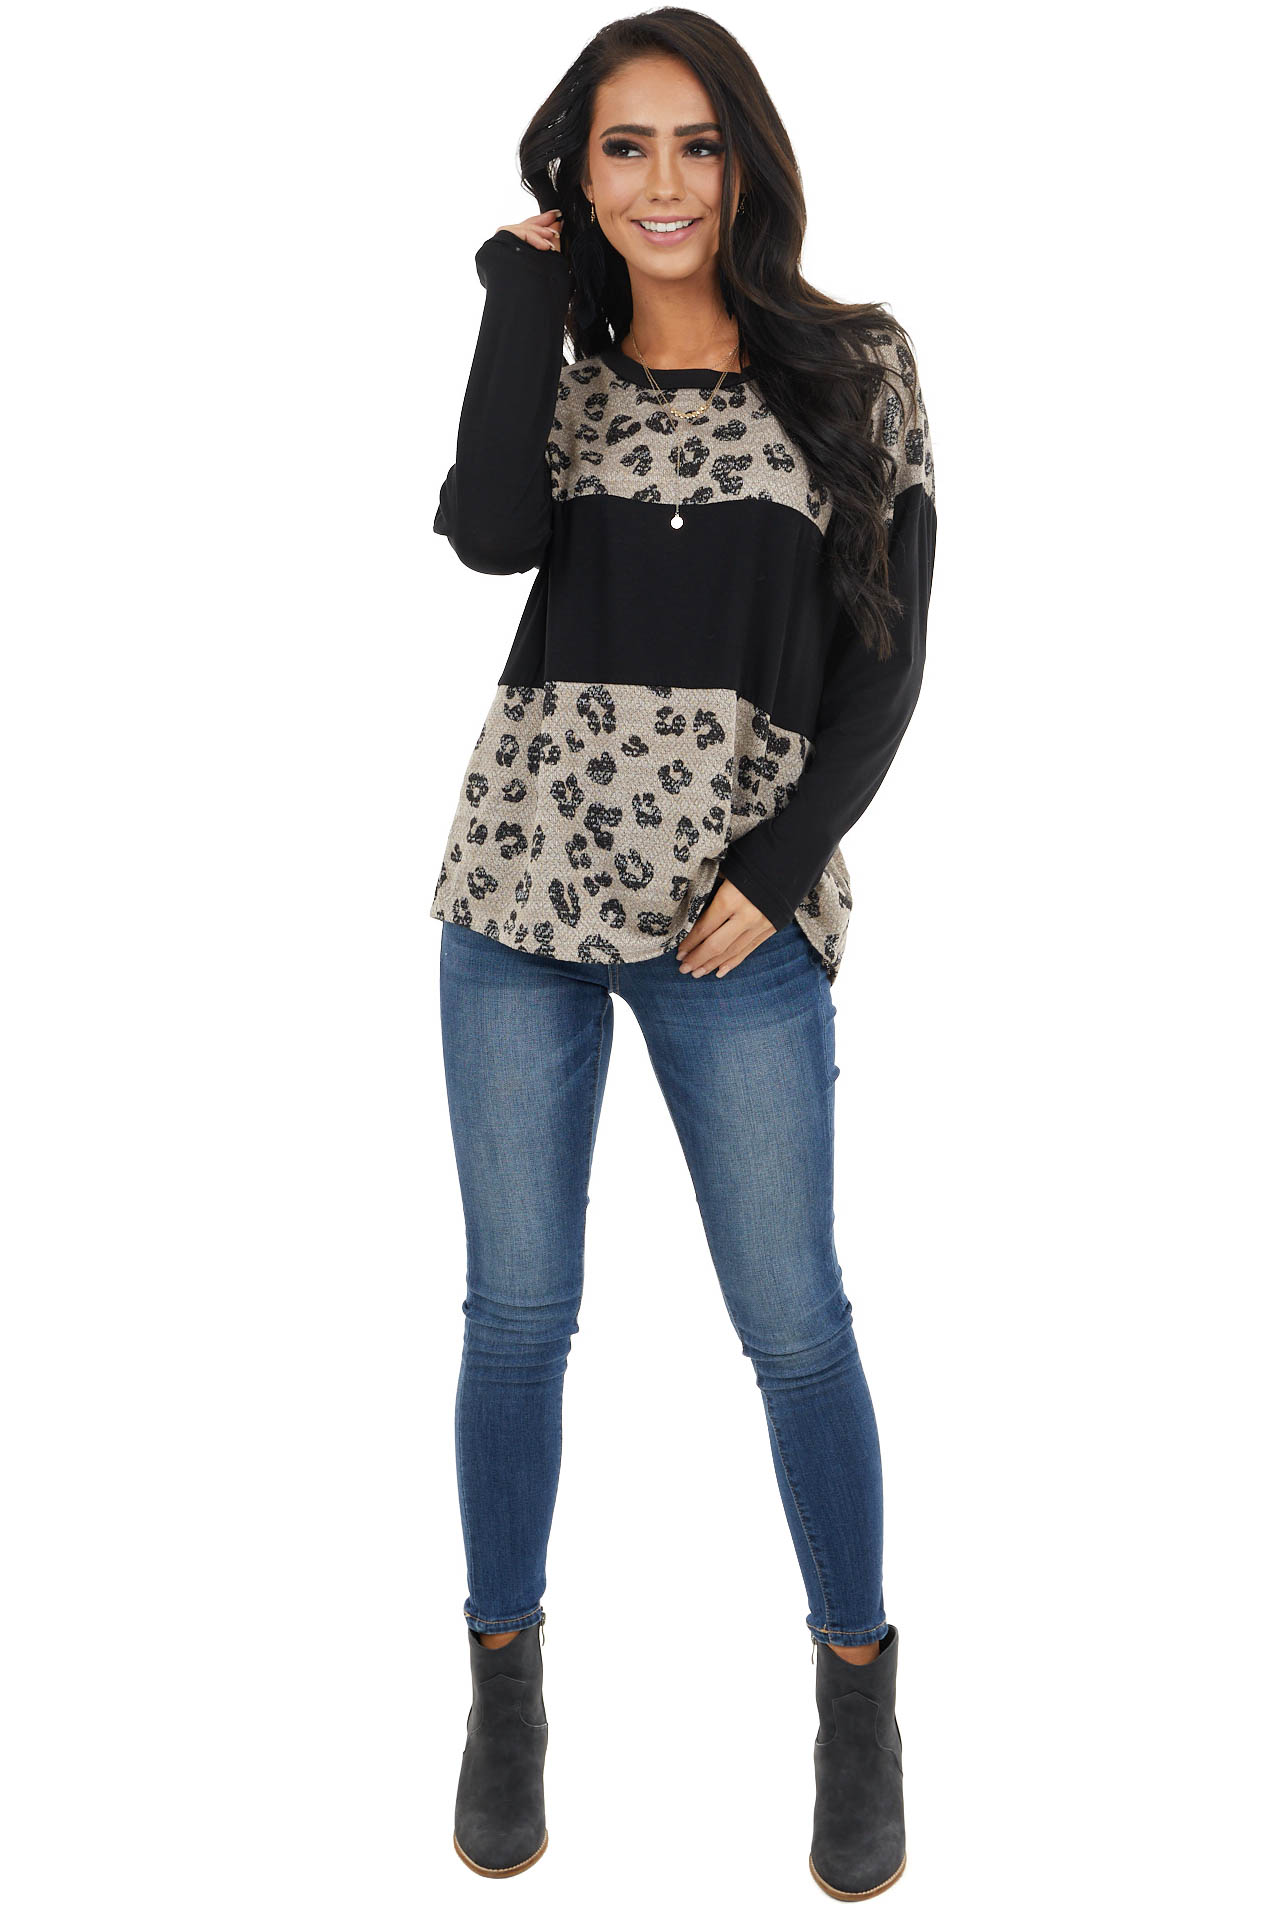 Latte and Black Colorblock and Leopard Print Long Sleeve Top